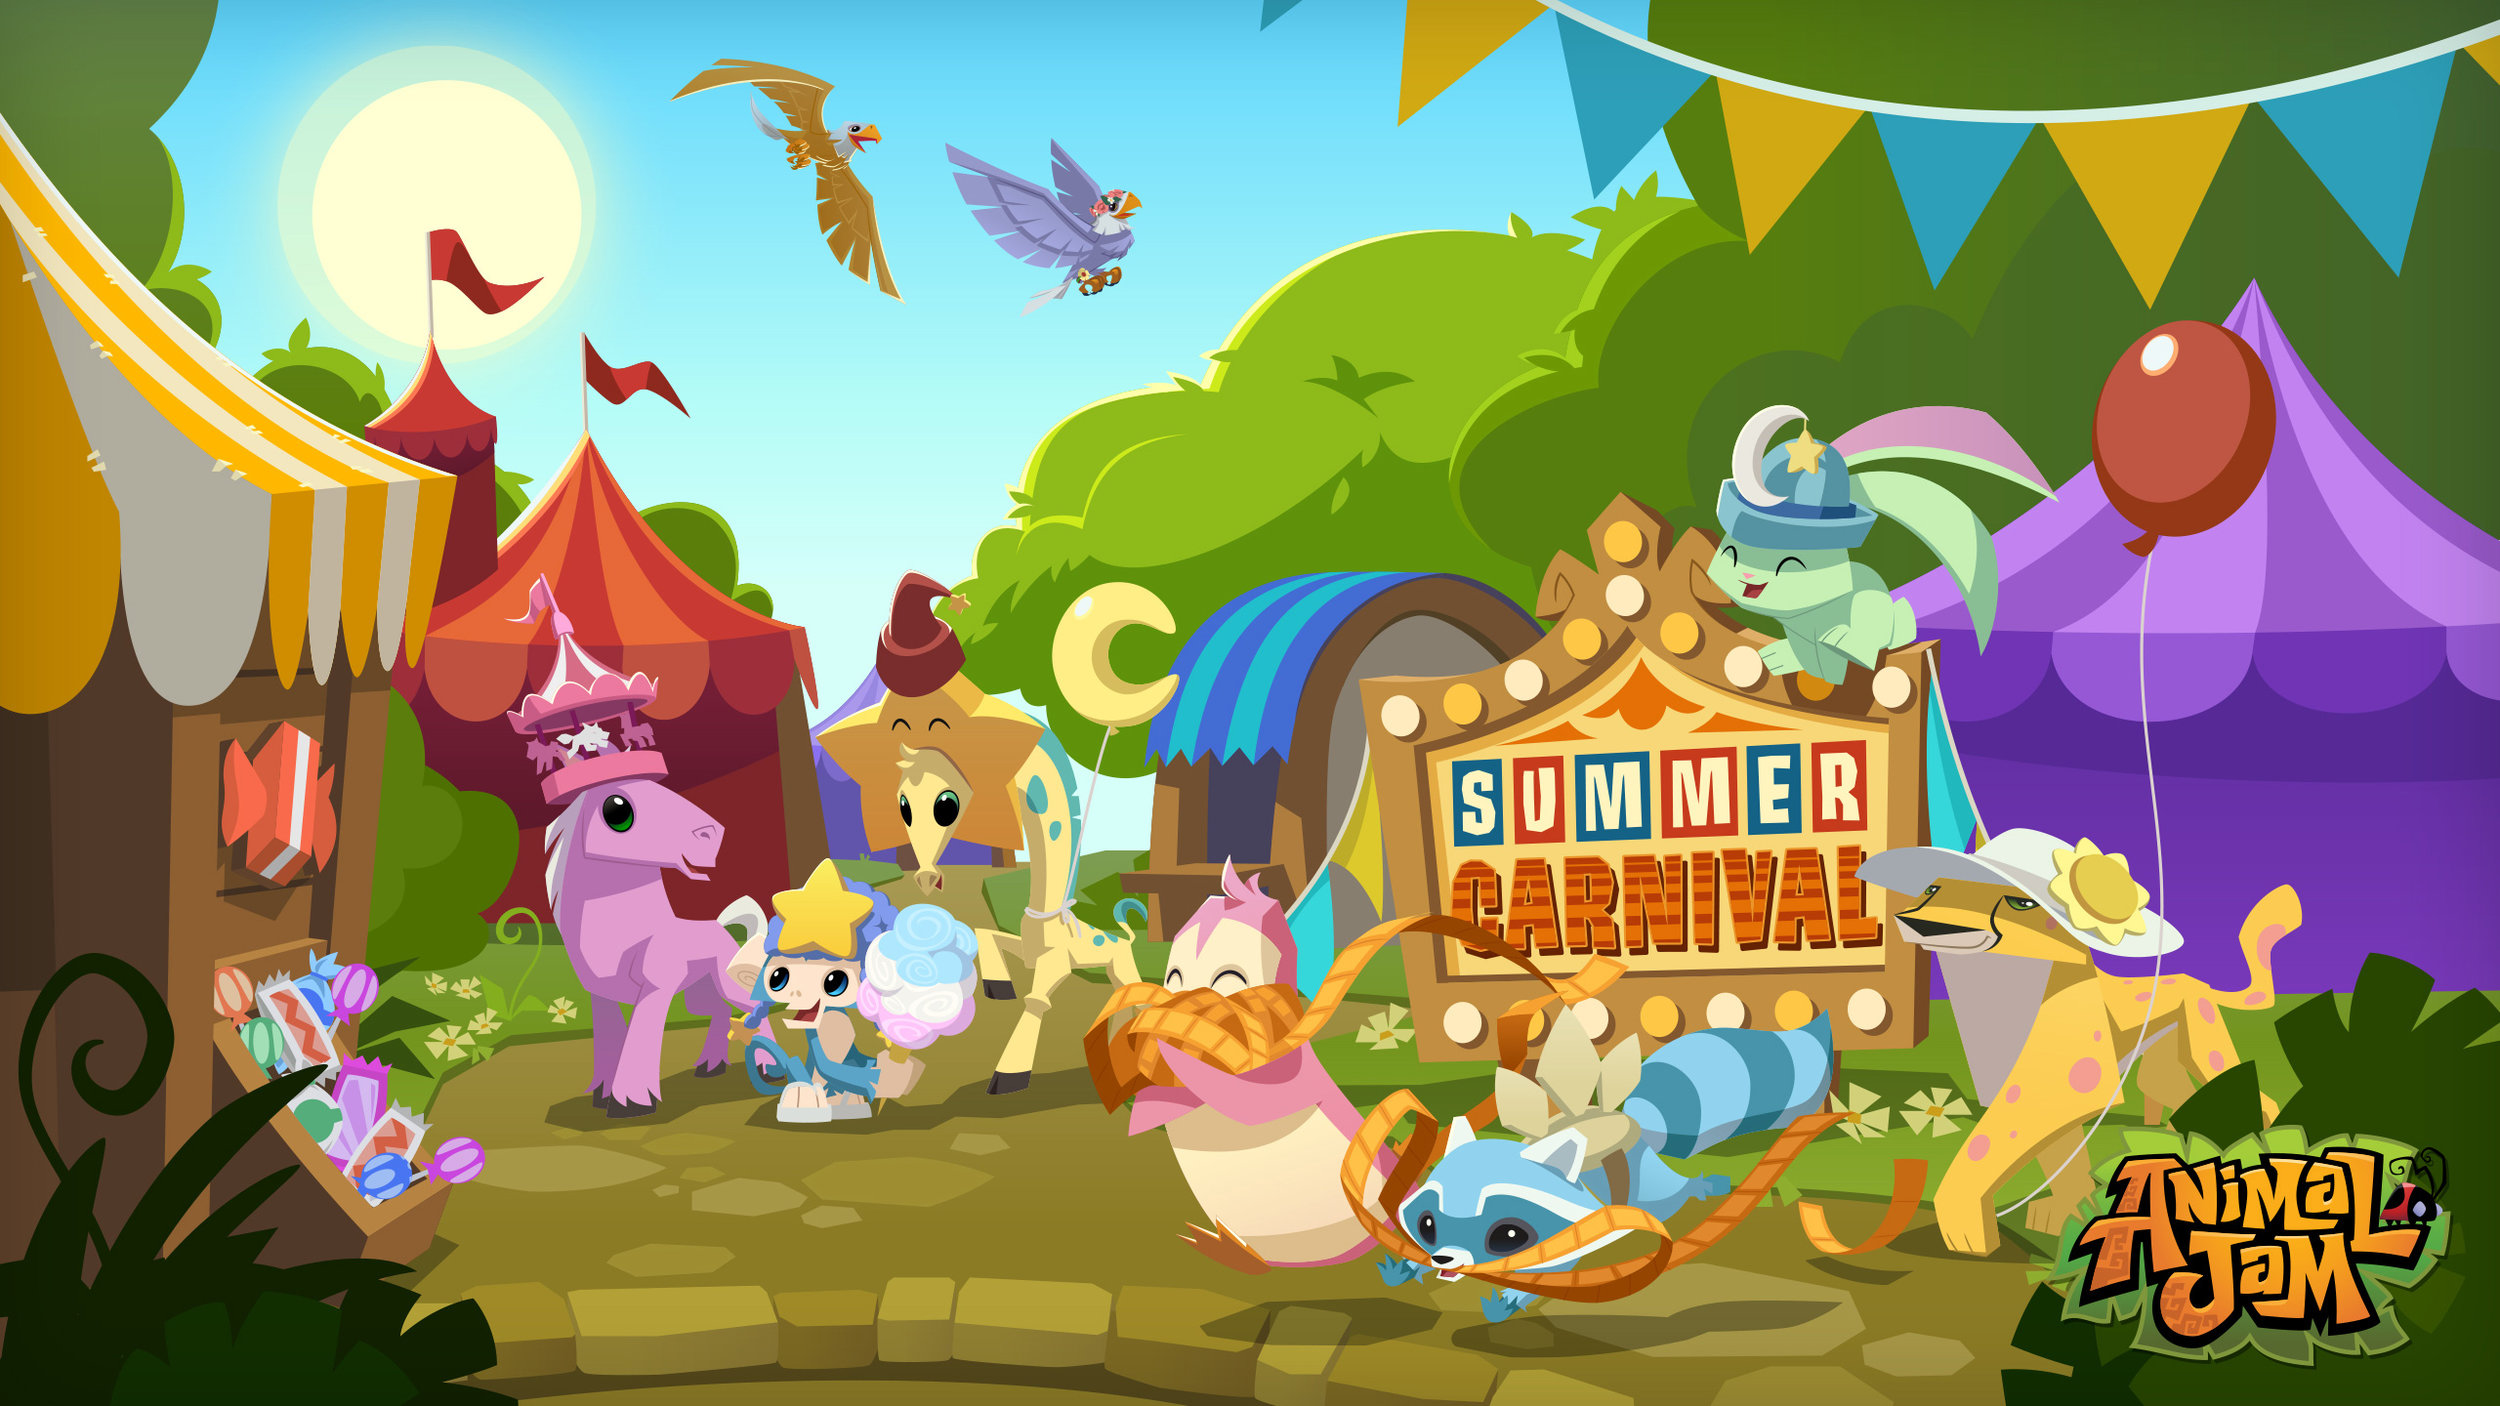 Summer Carnival Wallpaper